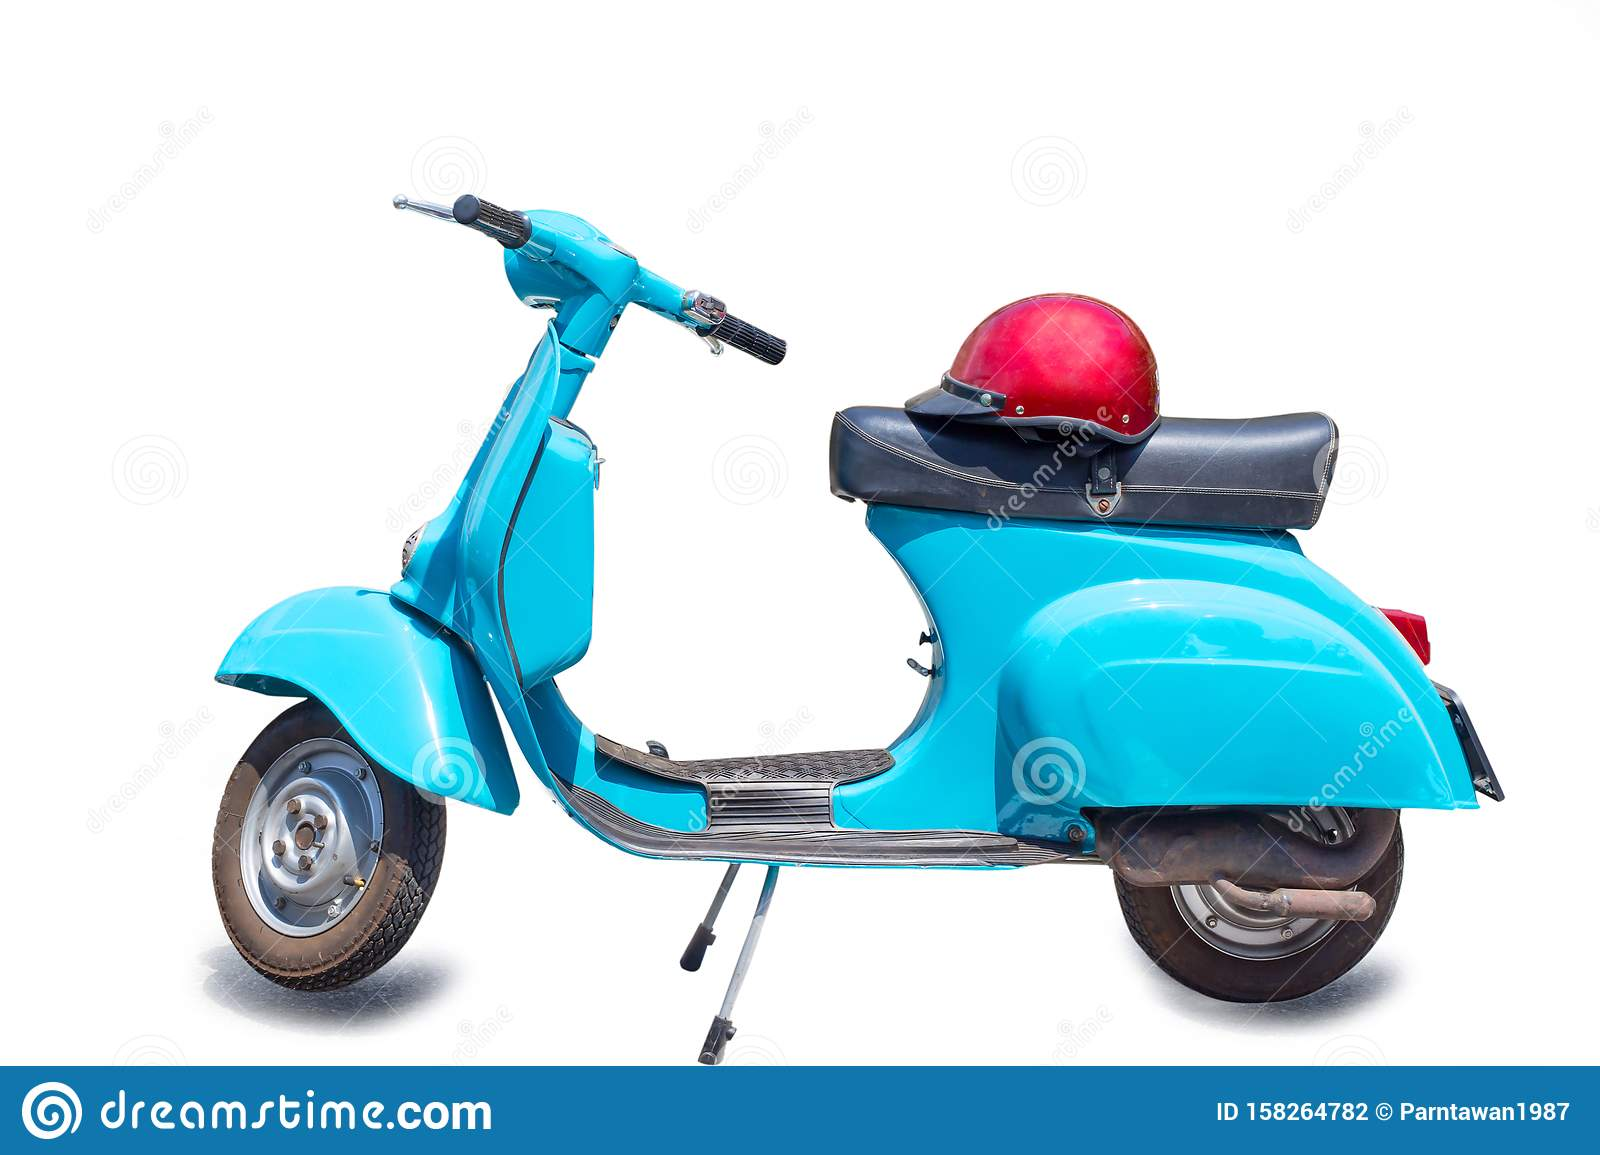 Retro Scooter Vintage Scooter Retro Motorcycle With Red Helmet Isolated On White Background With Clipping Path Stock Photo Image Of Speed Accessories 158264782